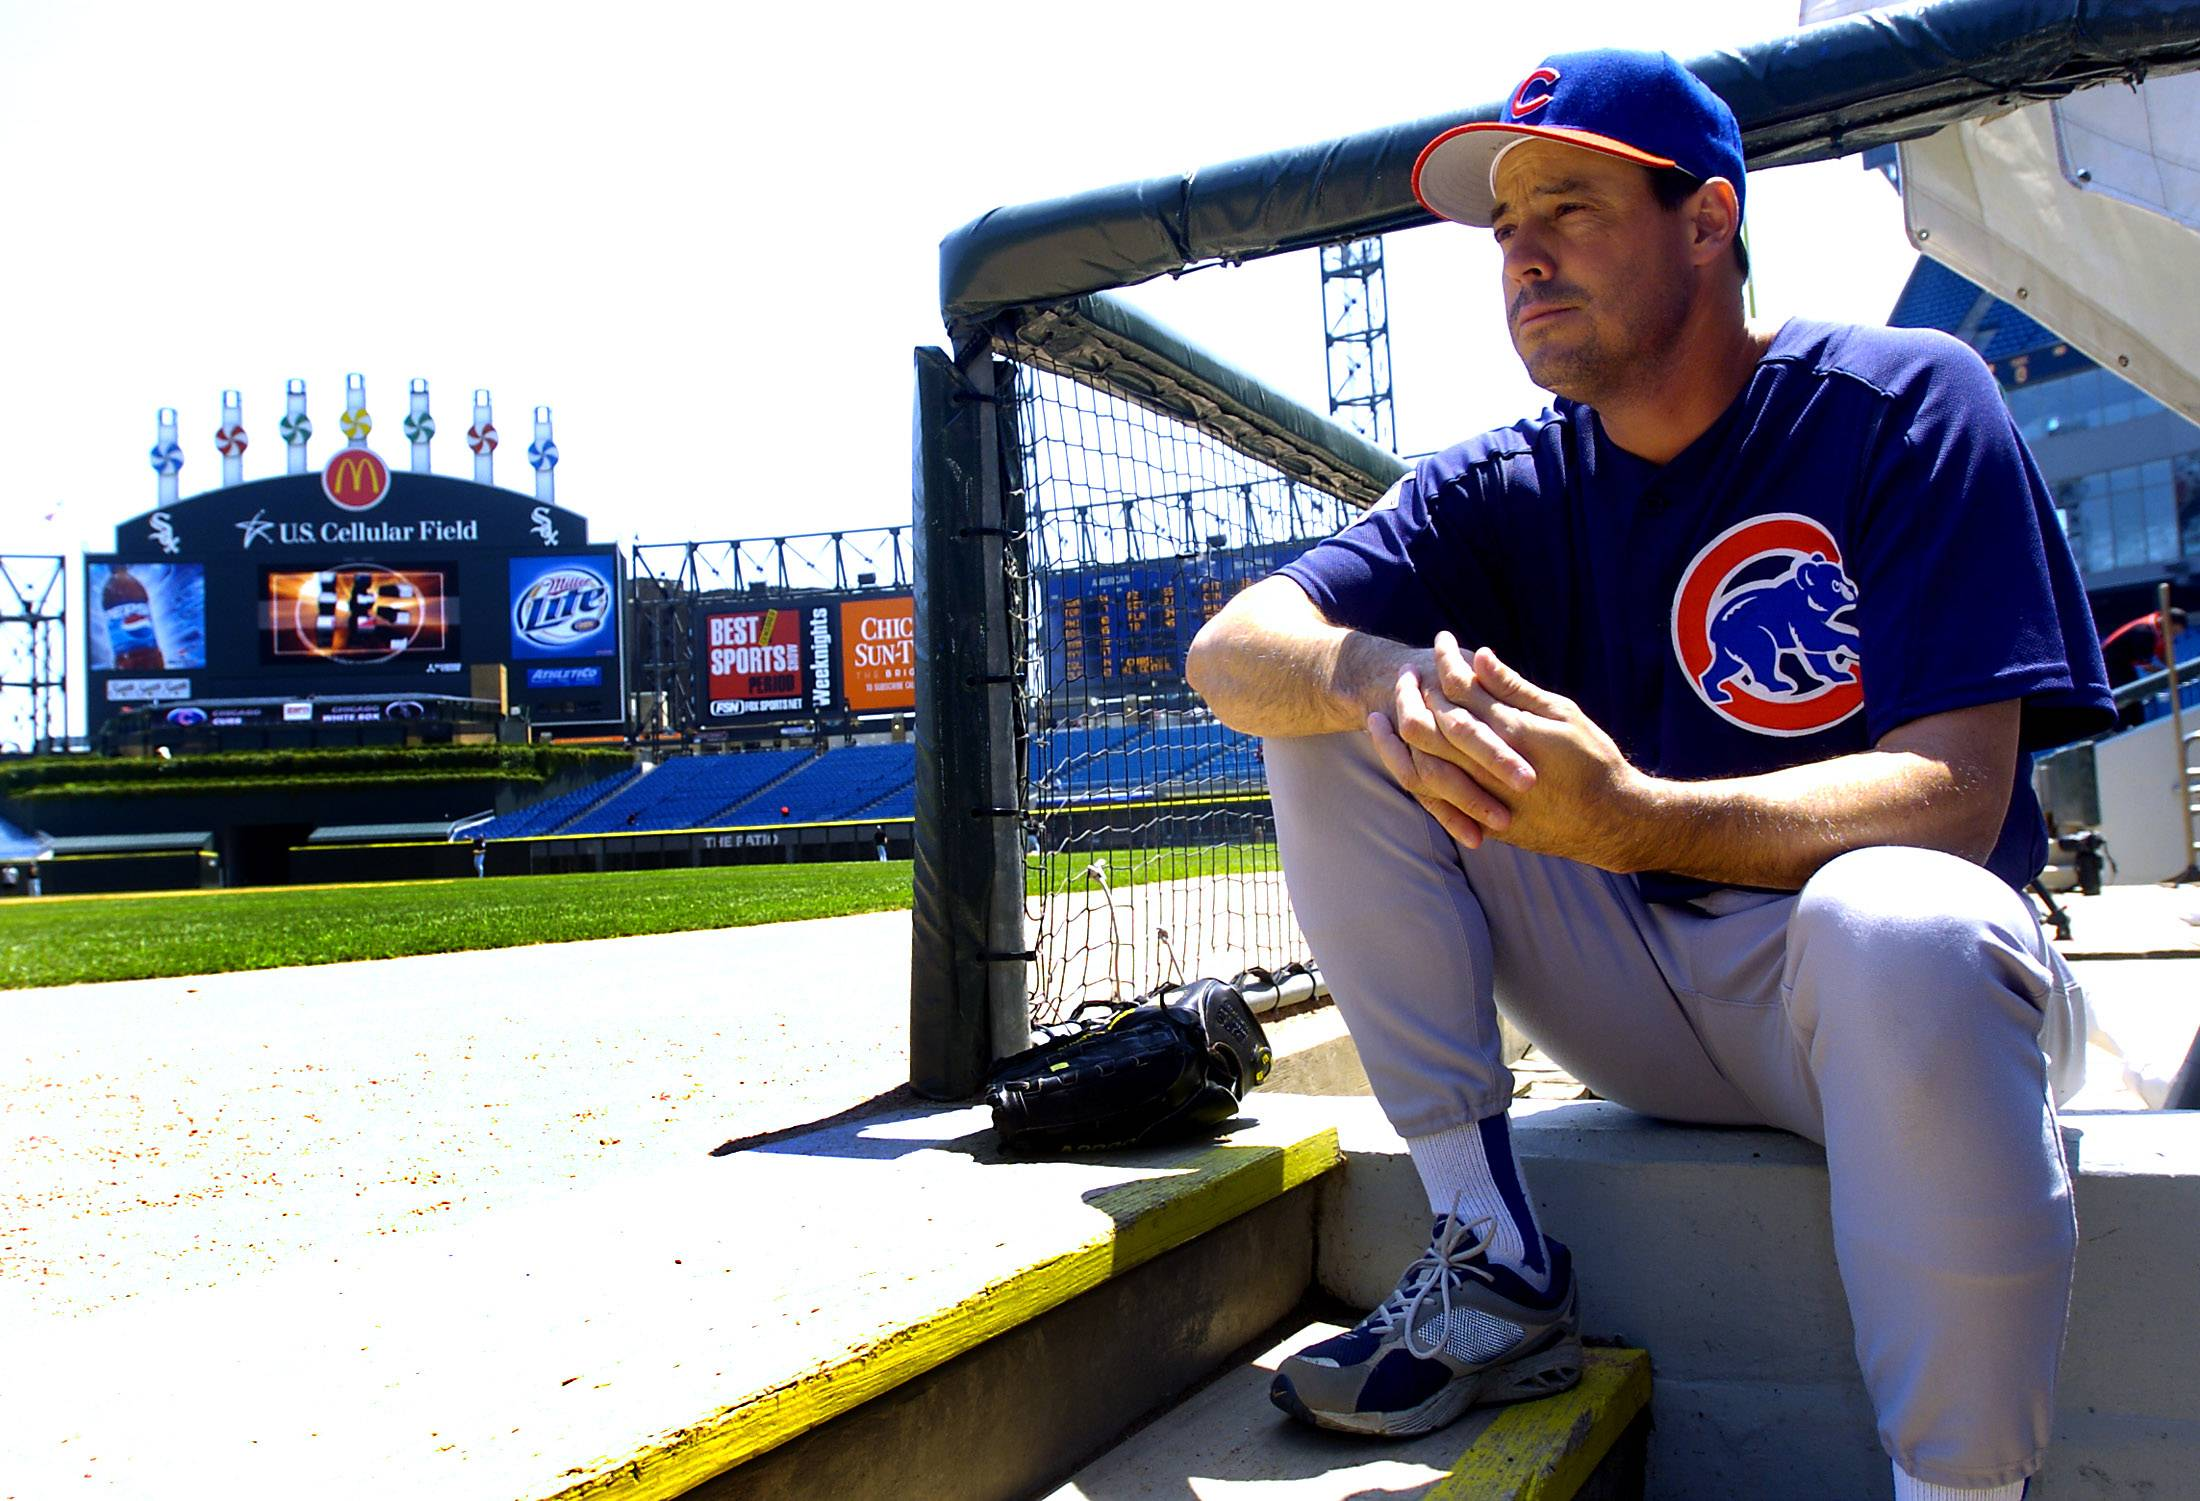 Mark Welsh/2006 Cubs Greg Maddux takes a moment before 2006 Chicago White Sox and Cubs game.